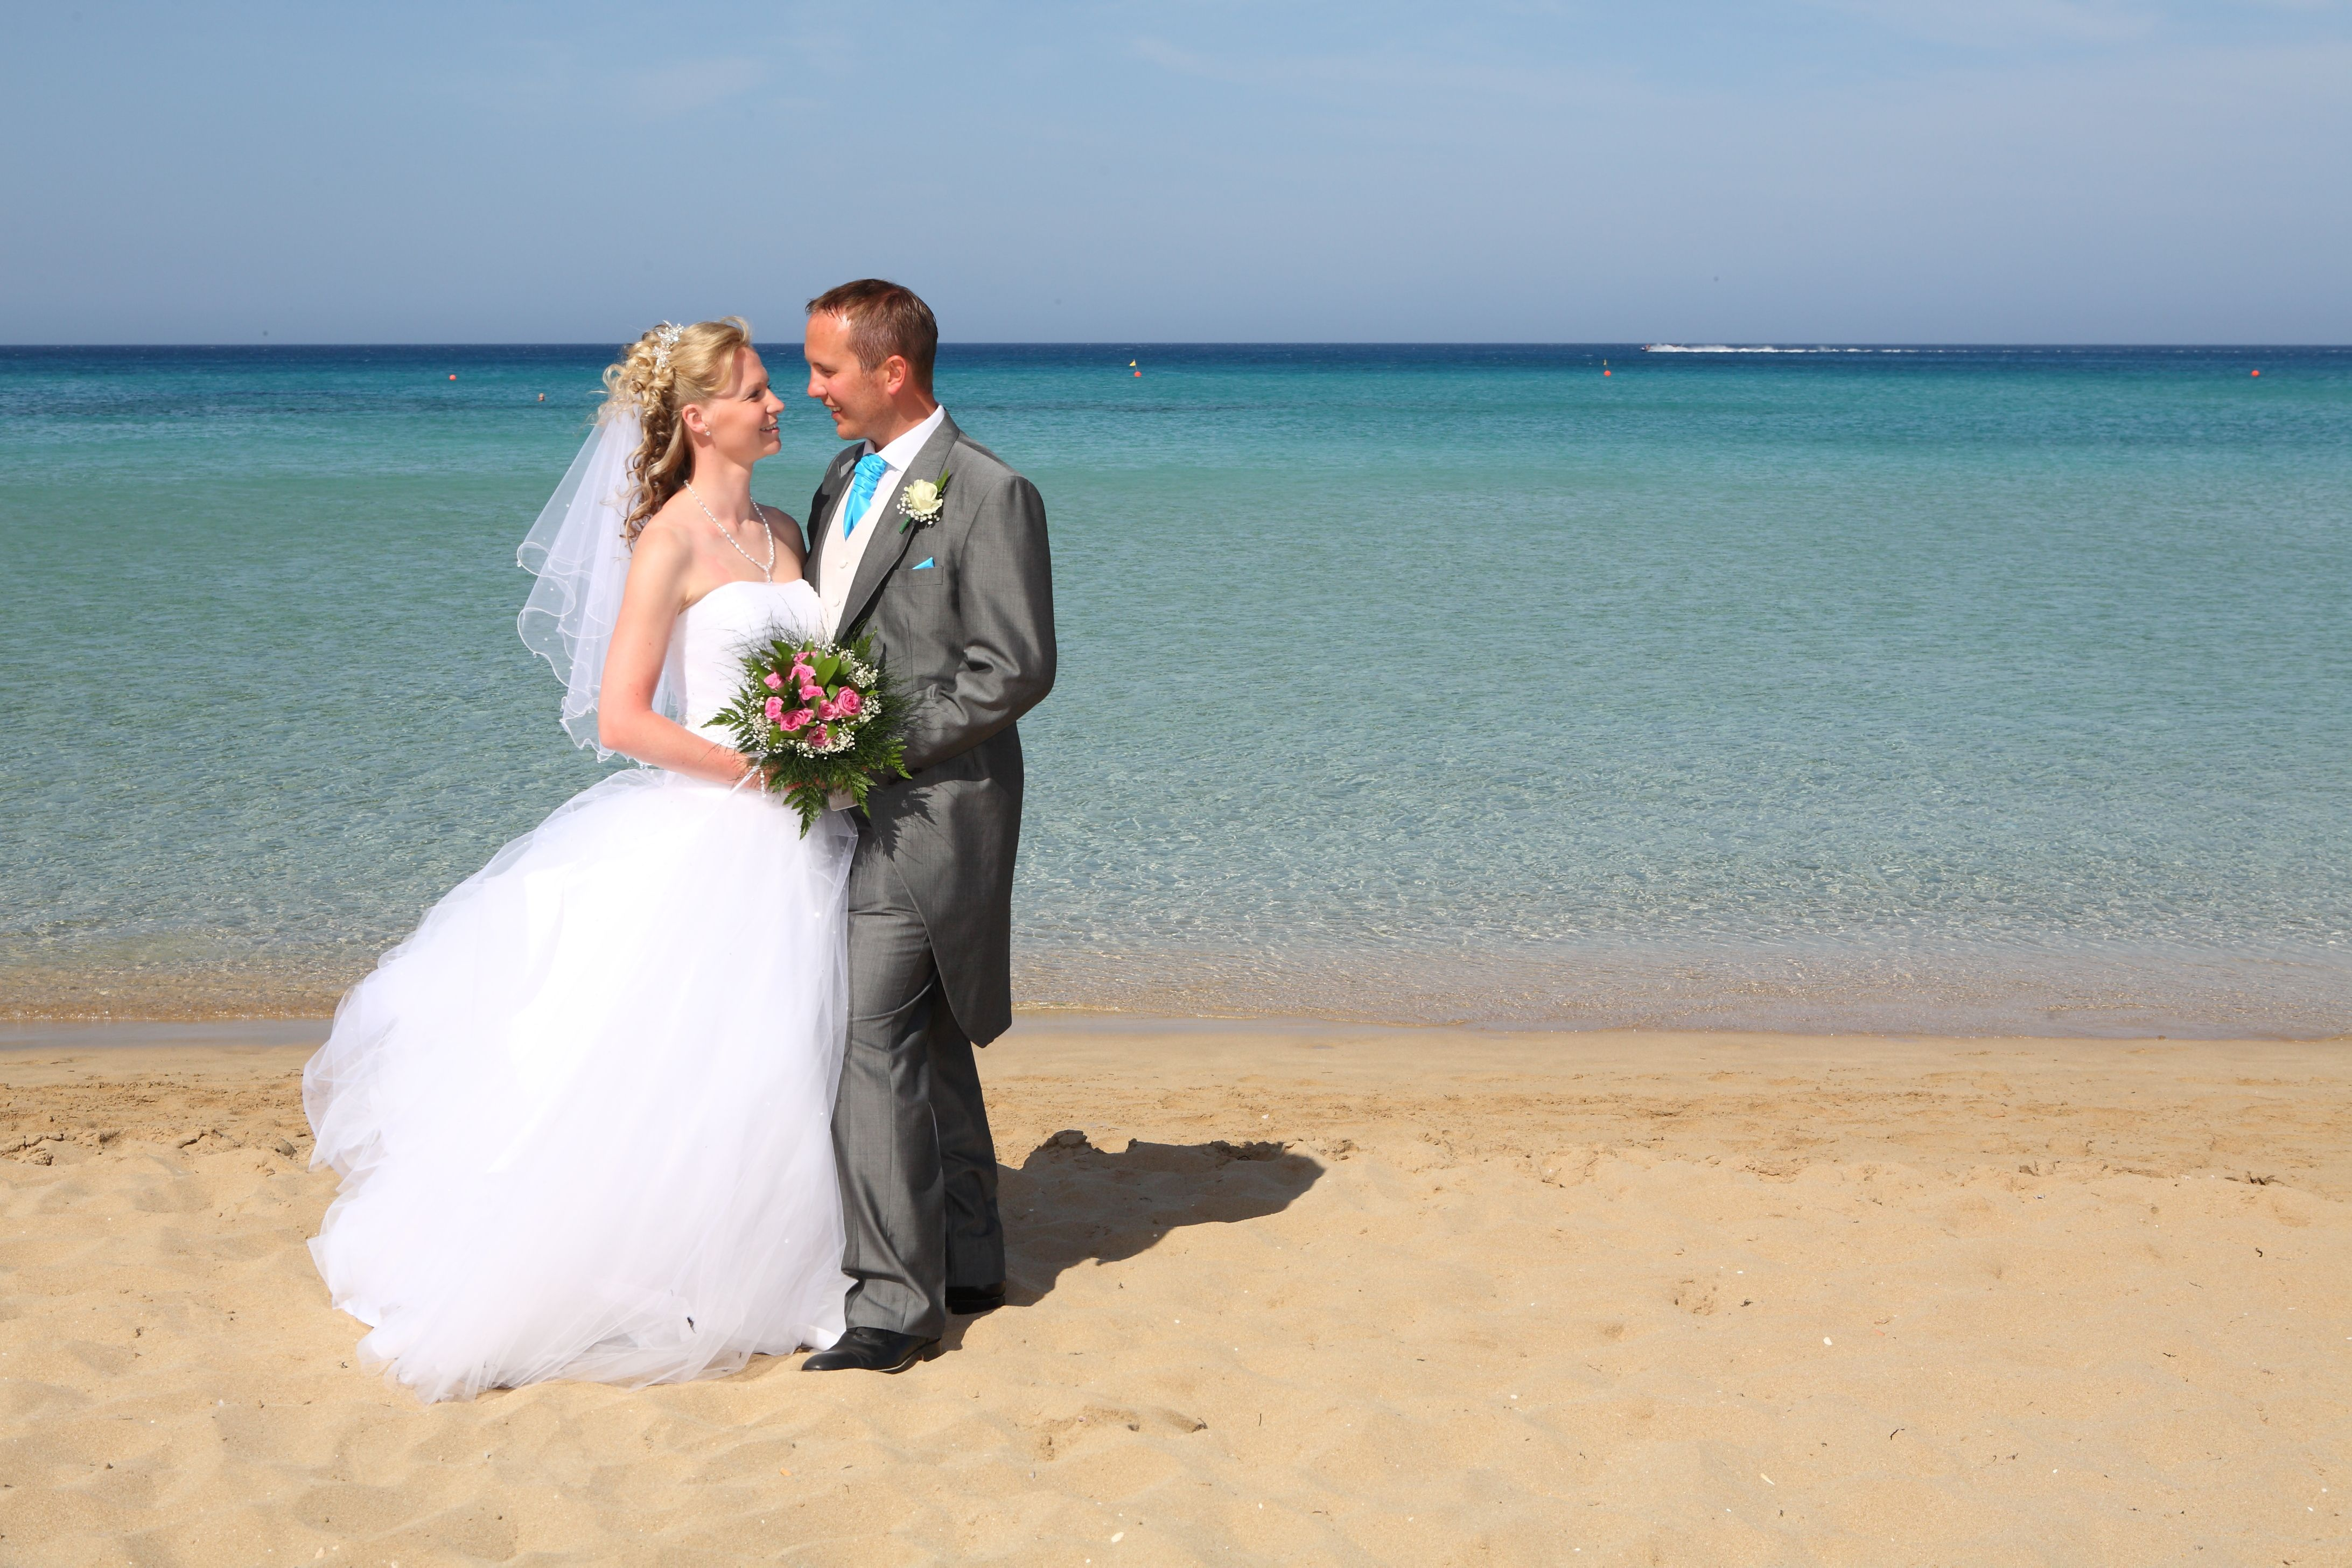 Find Your Perfect Wedding Venue For Getting Married In Cyprus Start Planning Today Book Direct With Our Weddings Abroad Specialists